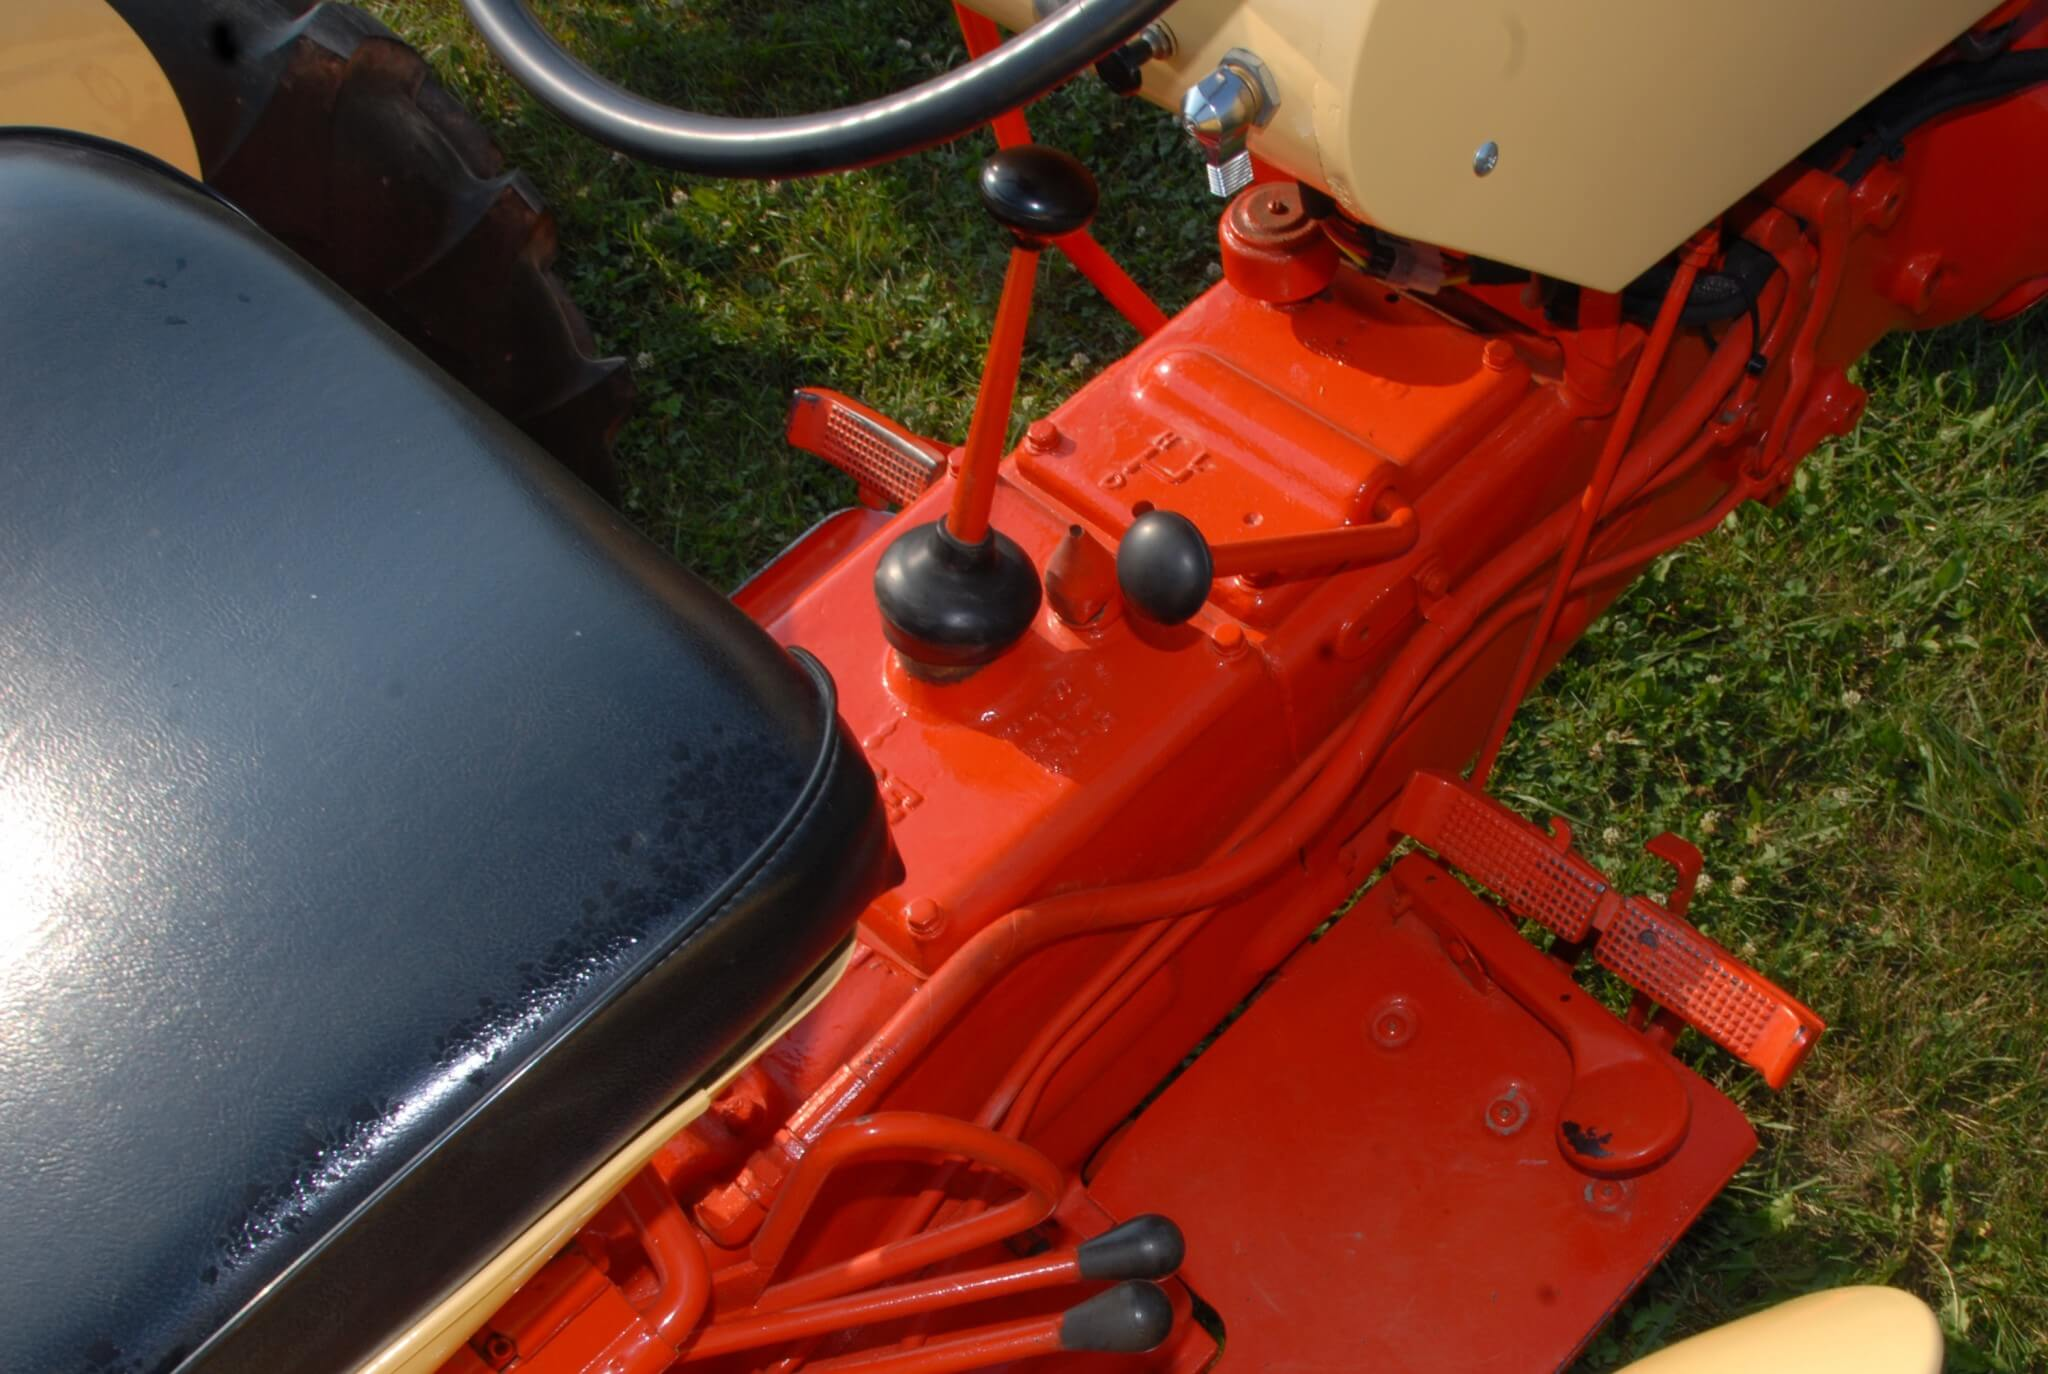 The Tripl-Range three-speed range box was a popular option and most remaining Case tractors of the era have it. The forward lever on the transmission housing is the range control. Moving the shifter fore and aft shifted between Direct and High. From the center position, sliding the lever to the right and forward engaged Low.